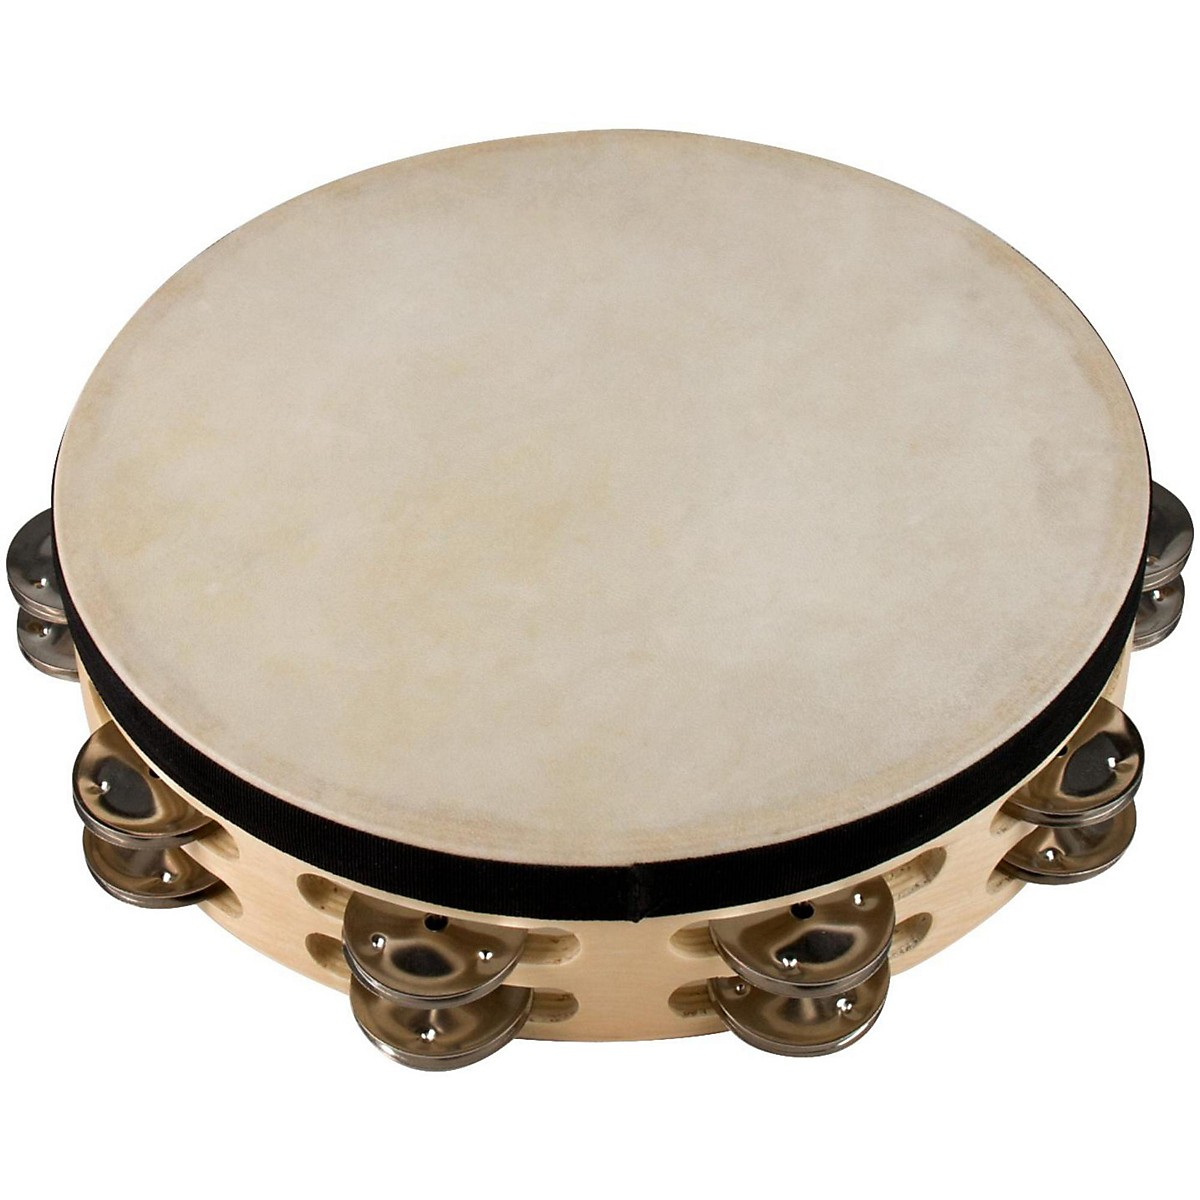 Sound Percussion Labs Baja Percussion Double Row Tambourine with Steel Jingles